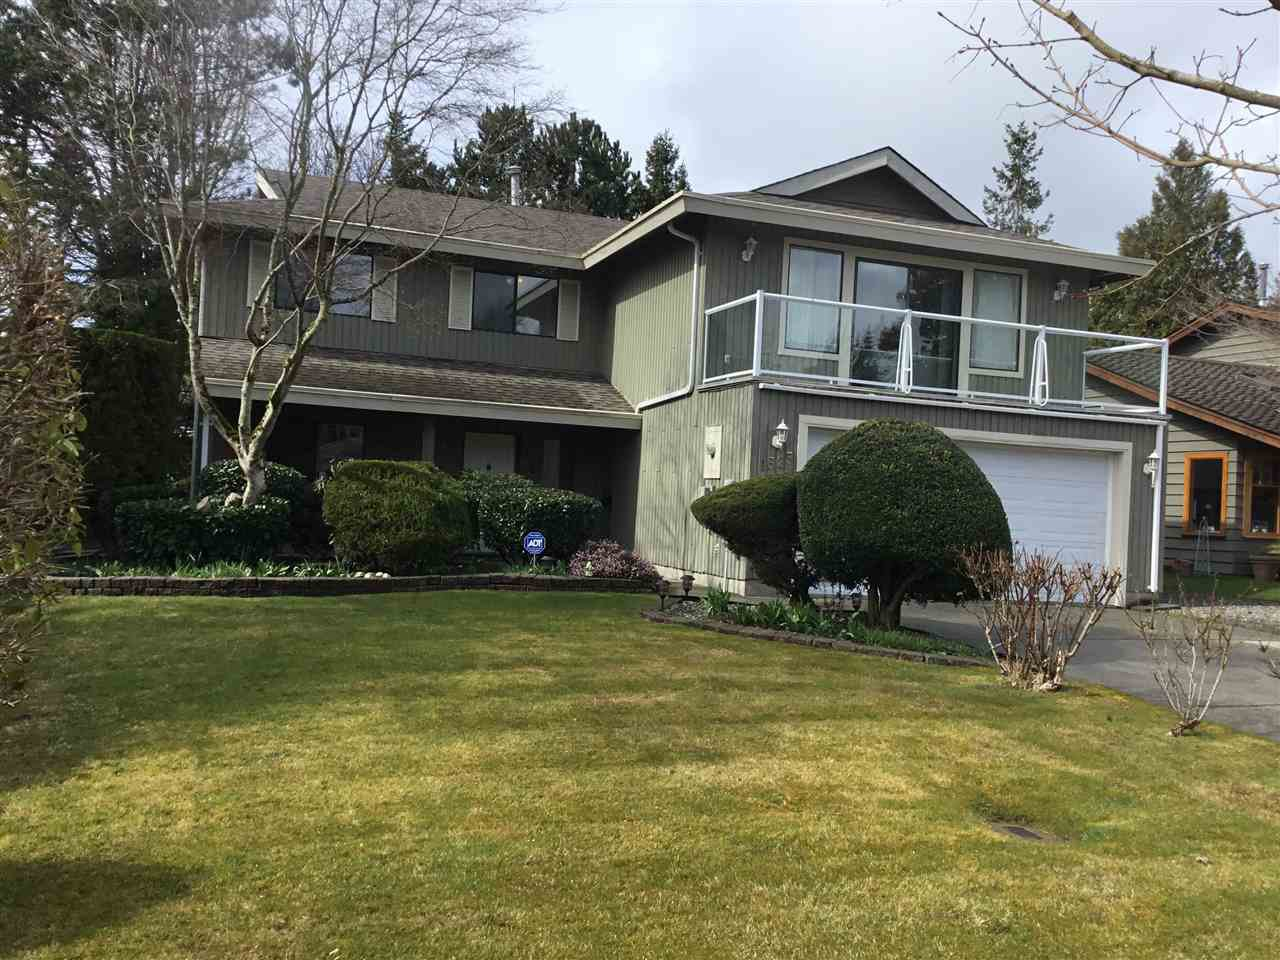 """Photo 2: Photos: 1525 133A Street in Surrey: Crescent Bch Ocean Pk. House for sale in """"OCEAN PARK"""" (South Surrey White Rock)  : MLS®# R2447186"""